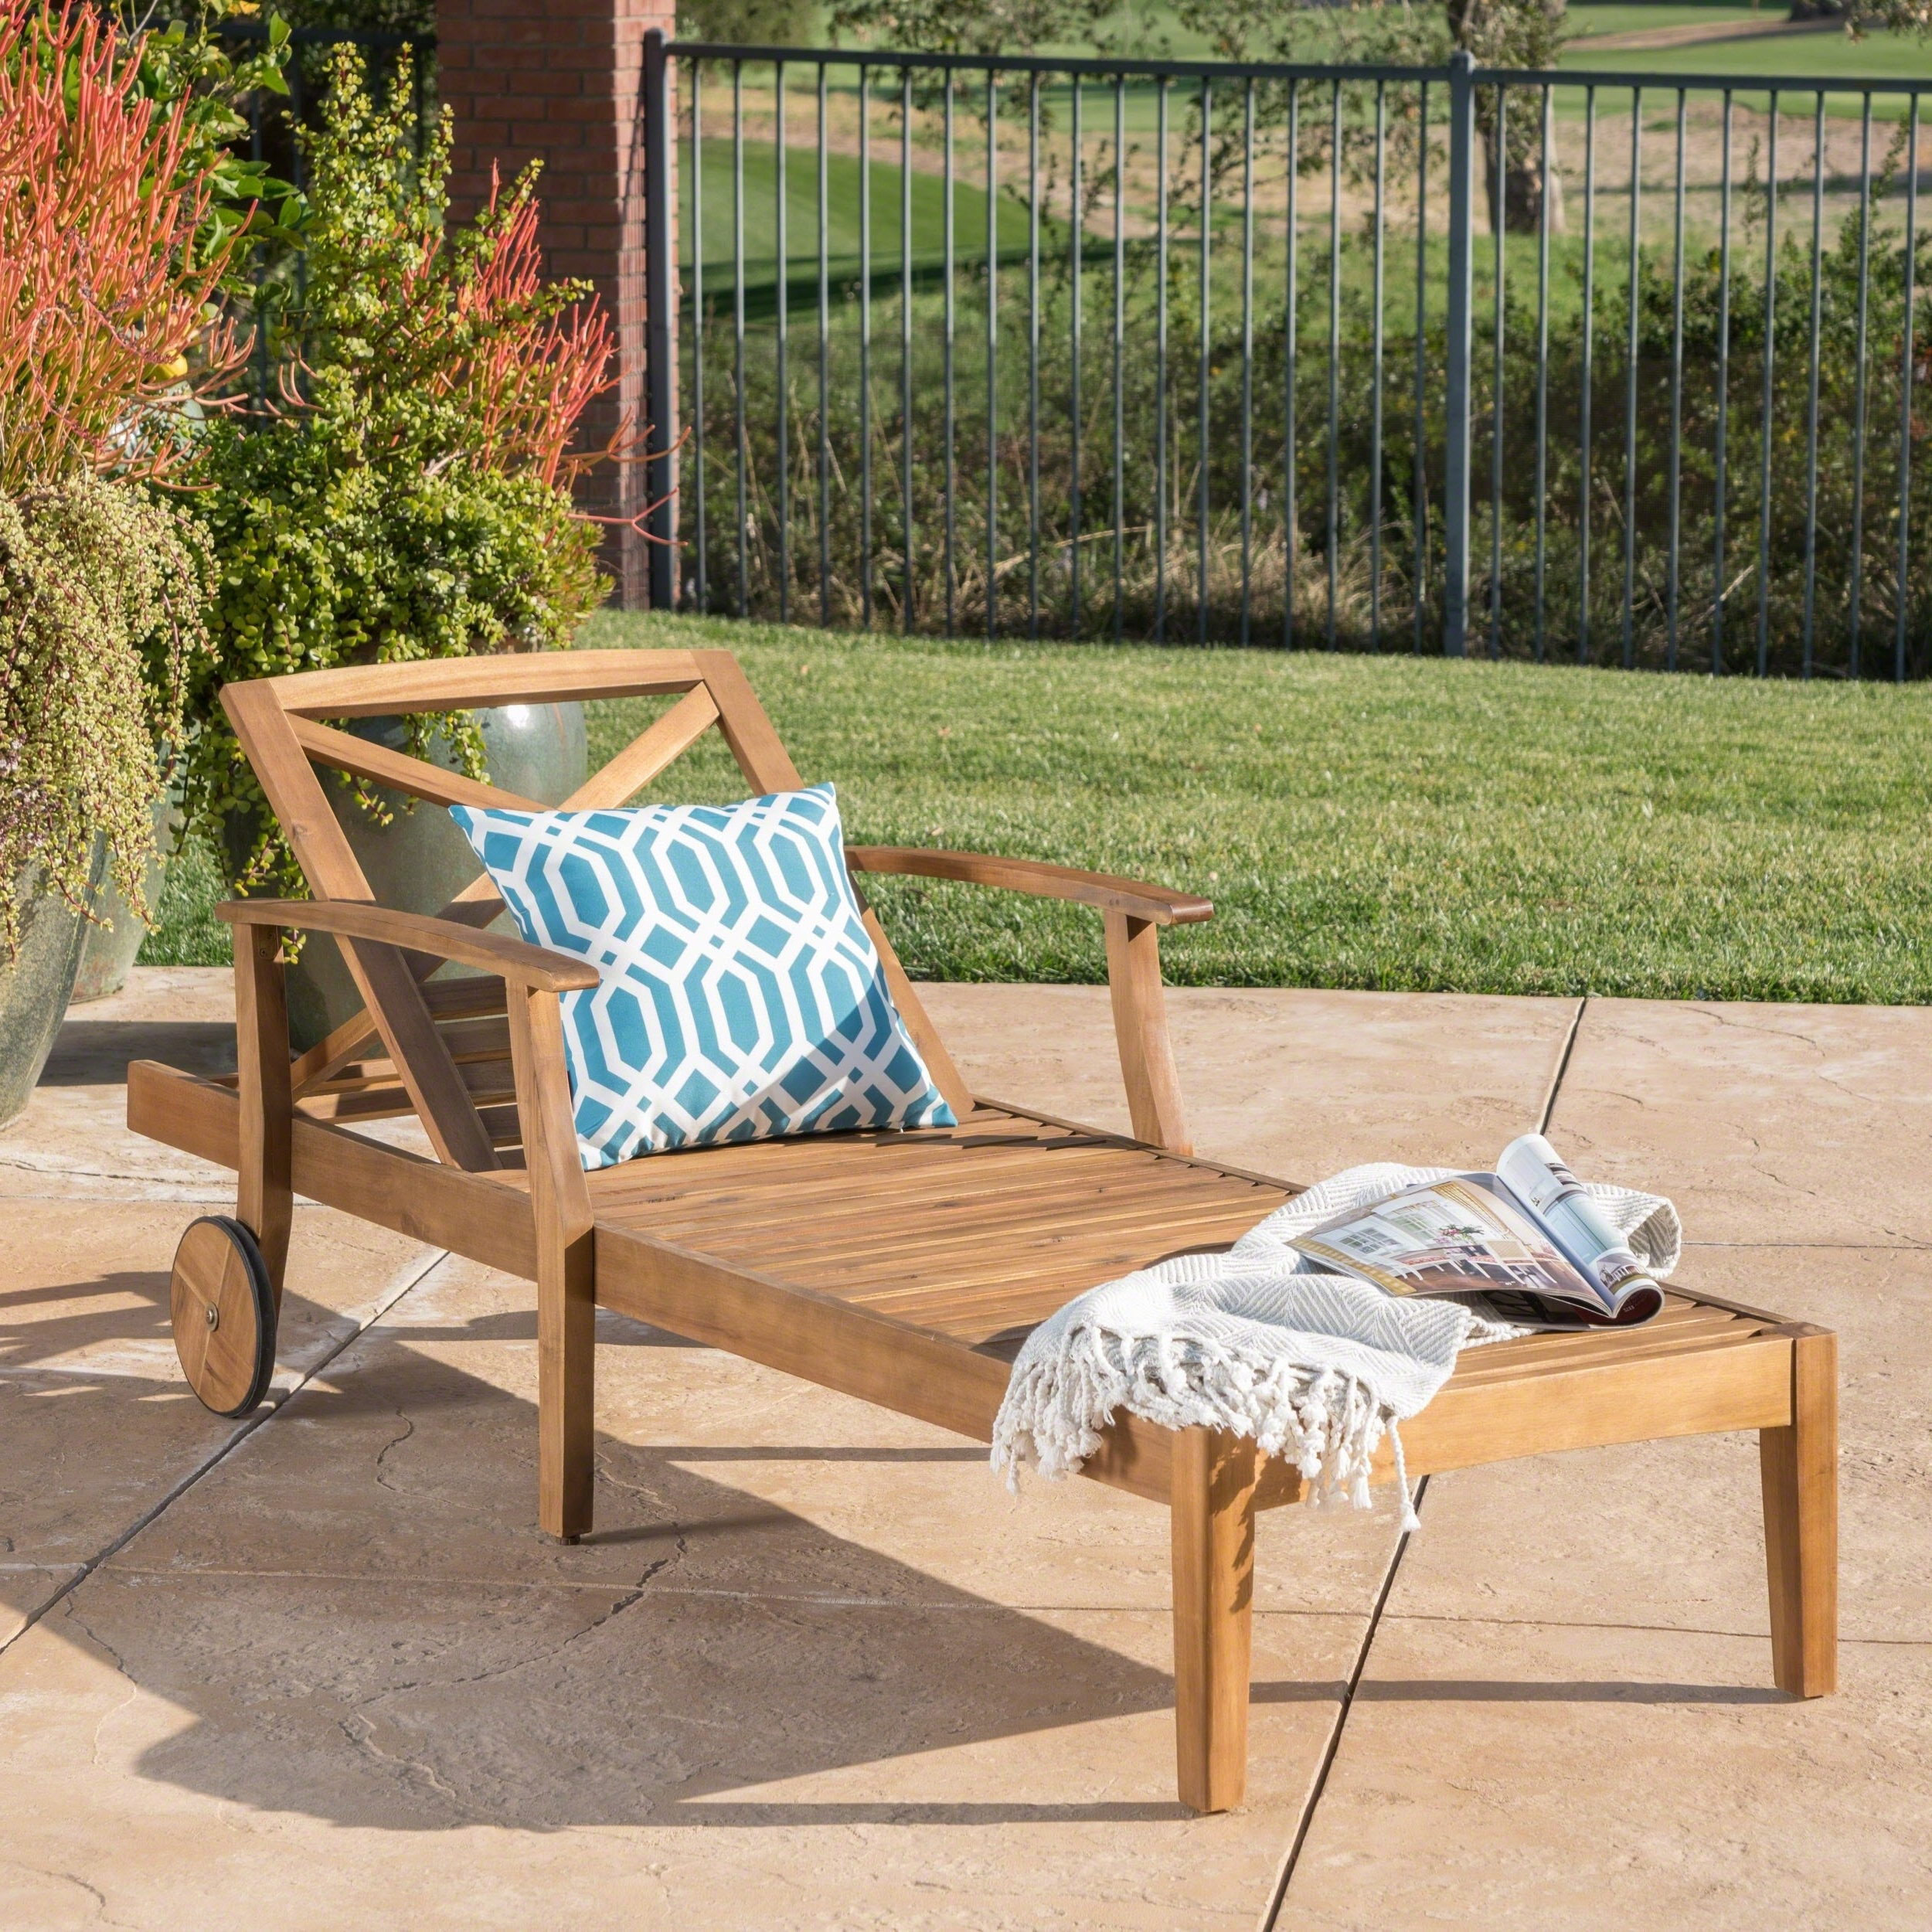 Perla Outdoor Acacia Wood Chaise Lounge With Cushion For Most Up To Date Christopher Knight Home Perla Outdoor Acacia Wood Chaise Lounge By (Gallery 8 of 25)